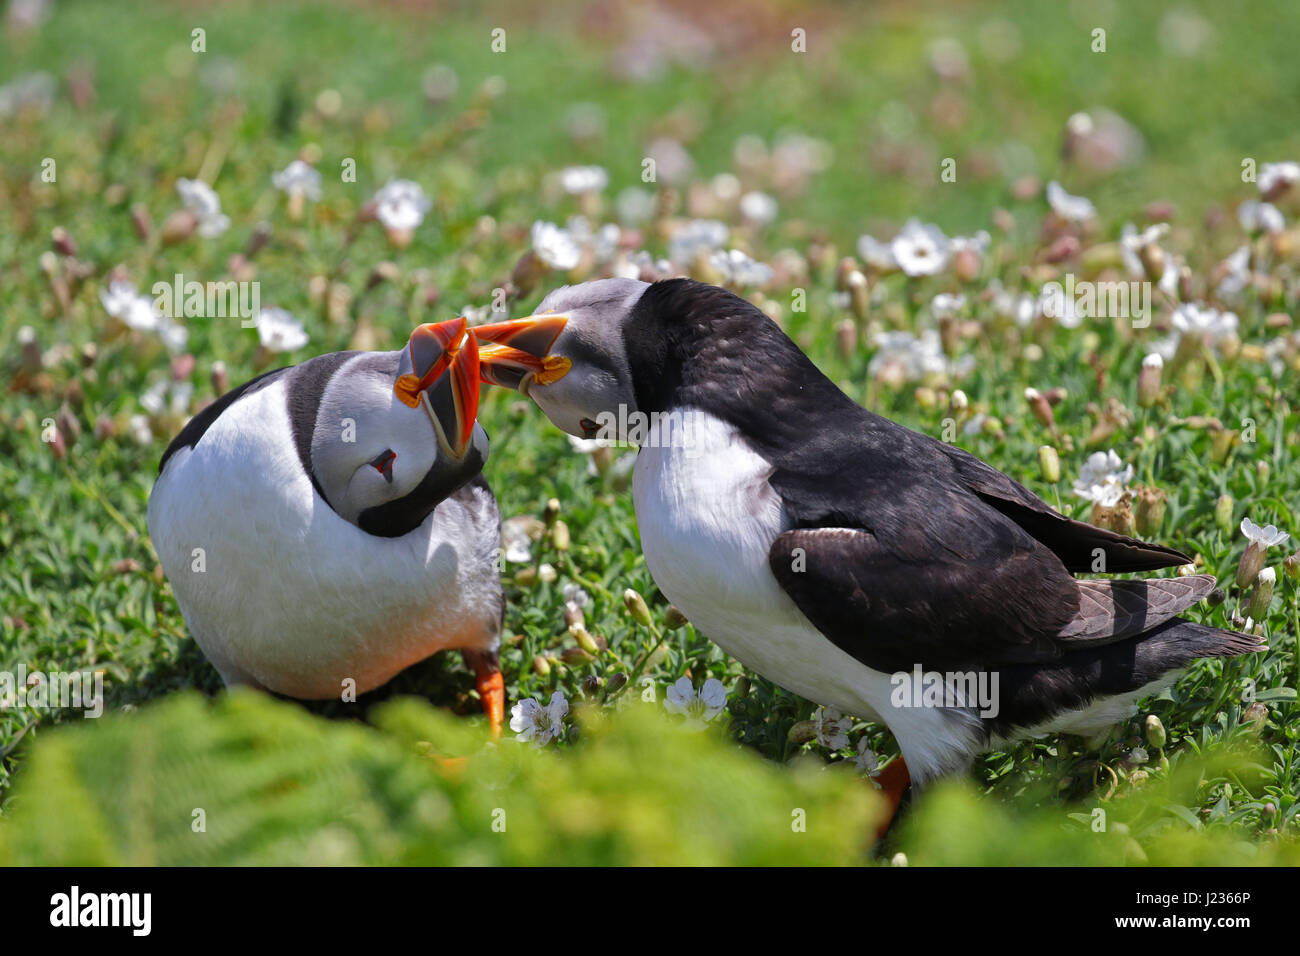 Puffins courtship display at Skoma Island, South West Wales UK - Stock Image